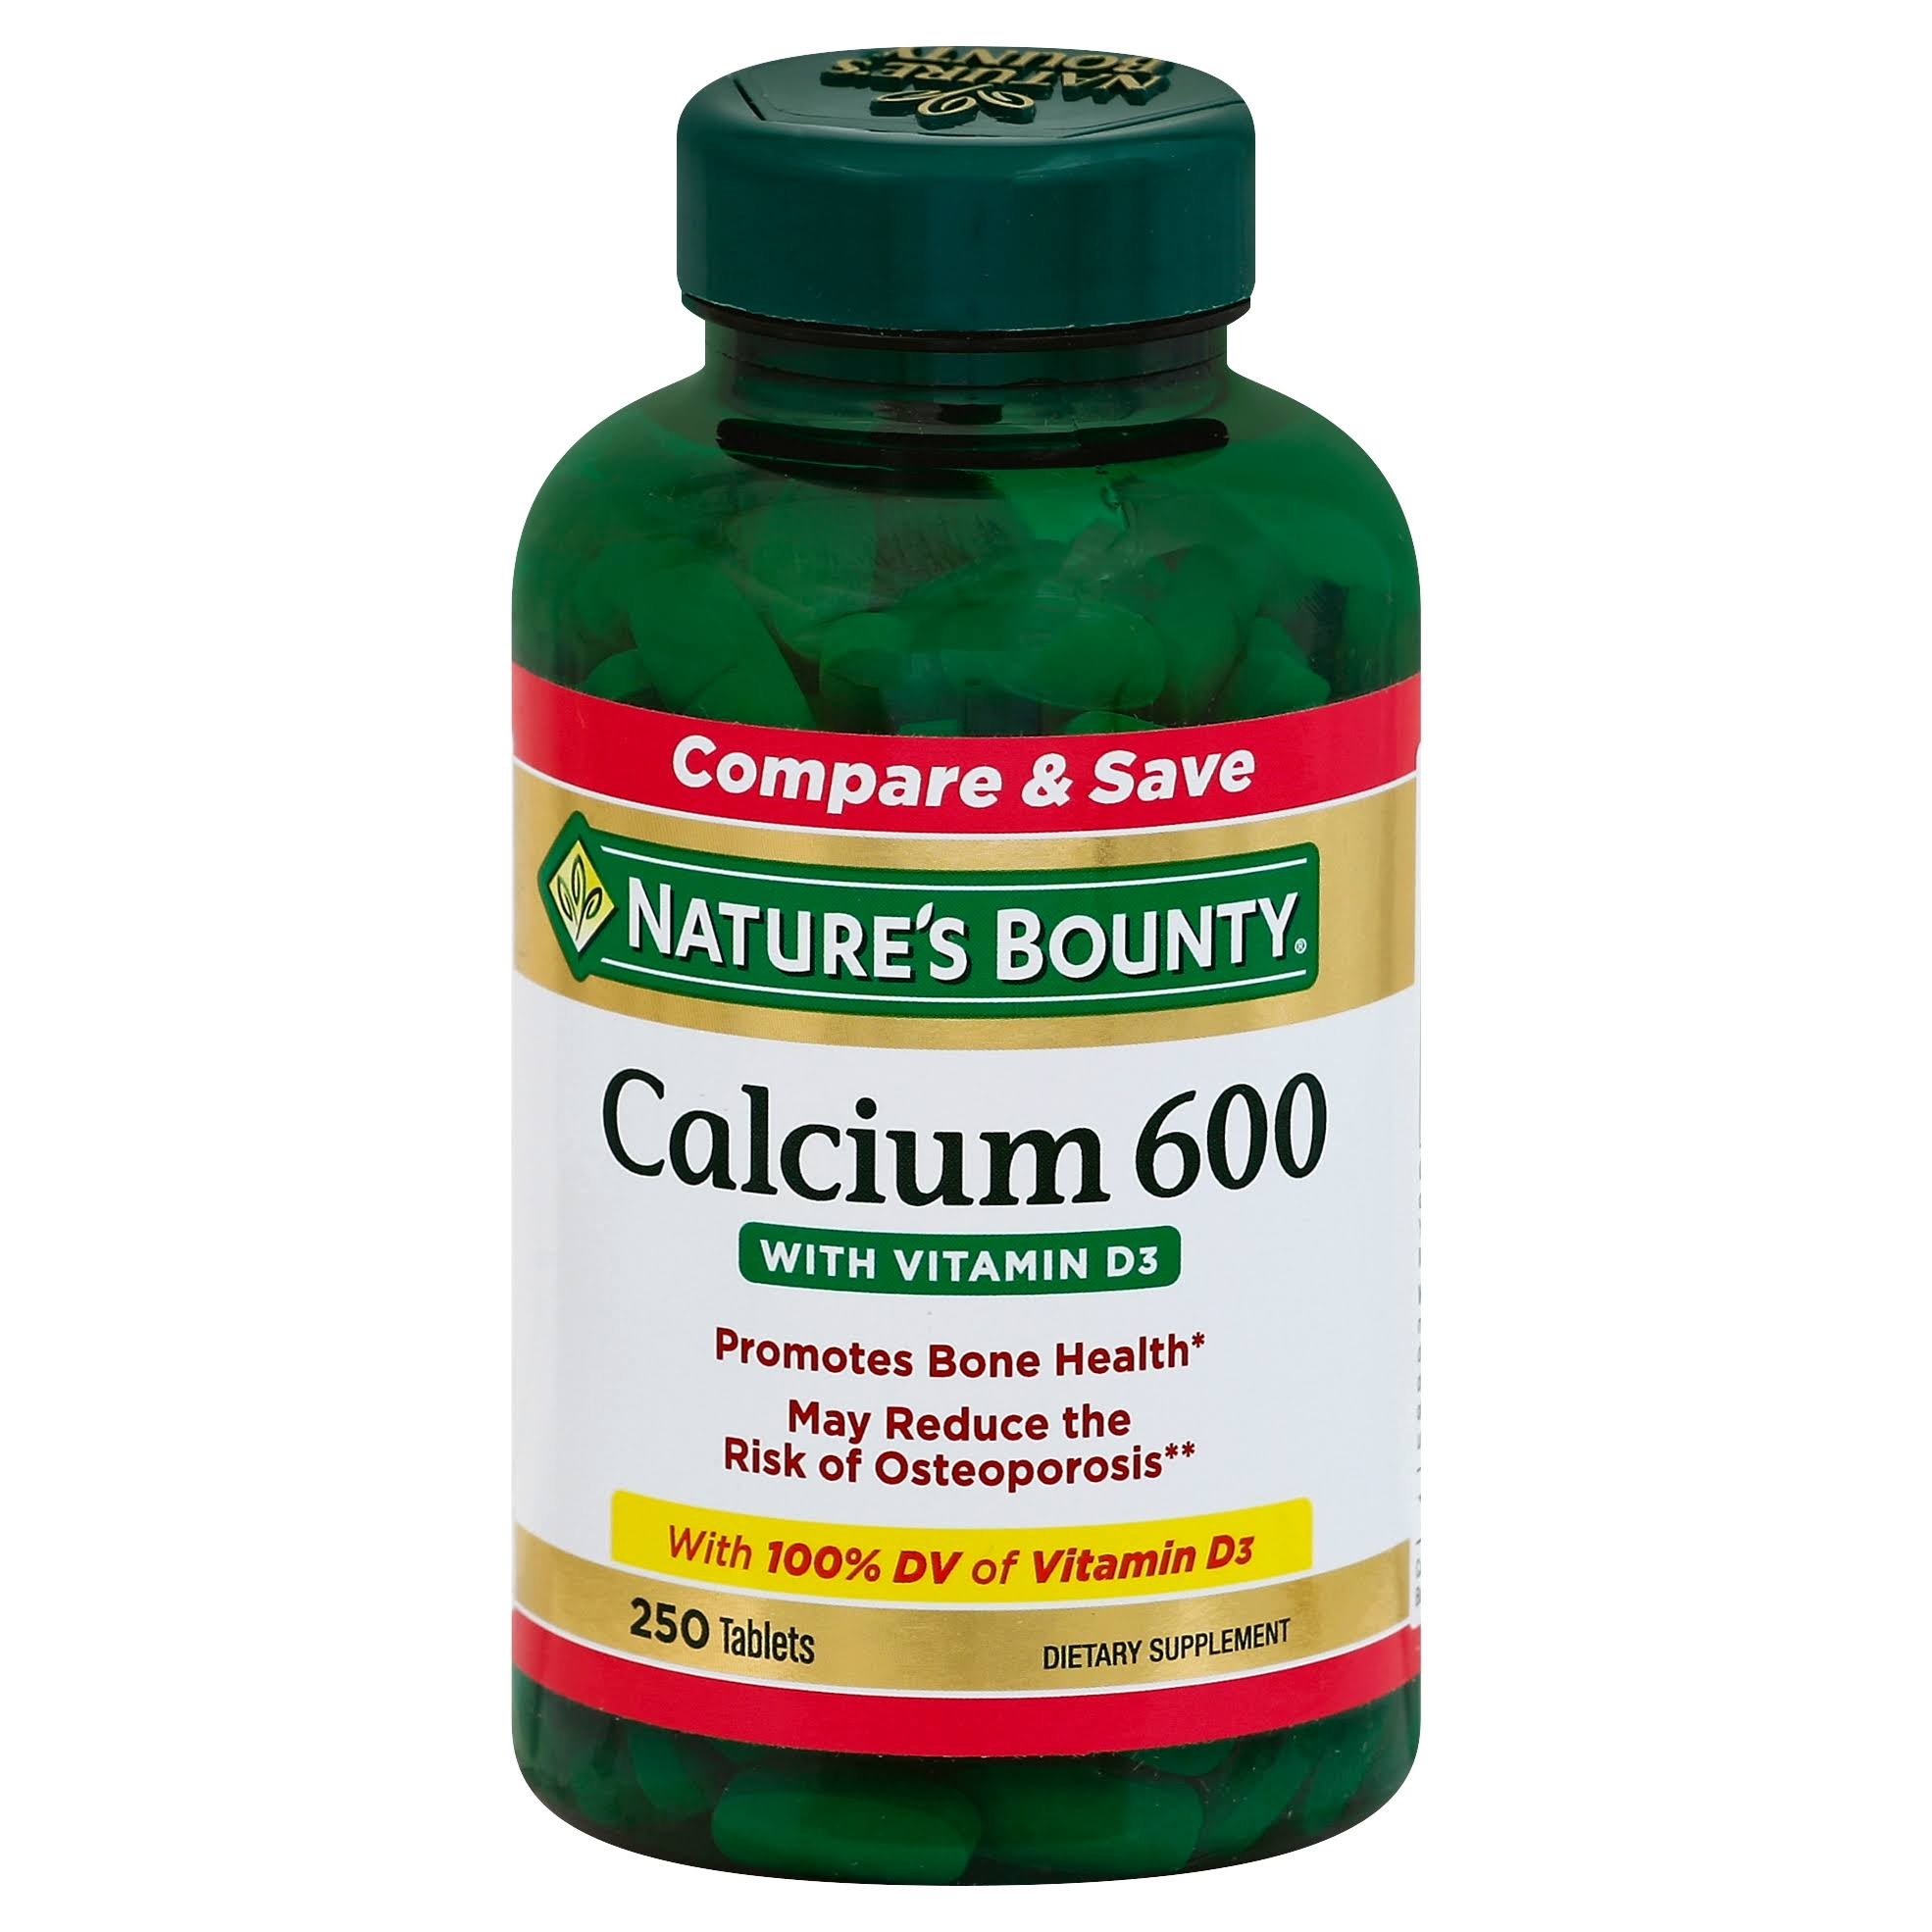 Nature's Bounty Calcium 600 with Vitamin D3 Dietary Supplement - 250 Tablets